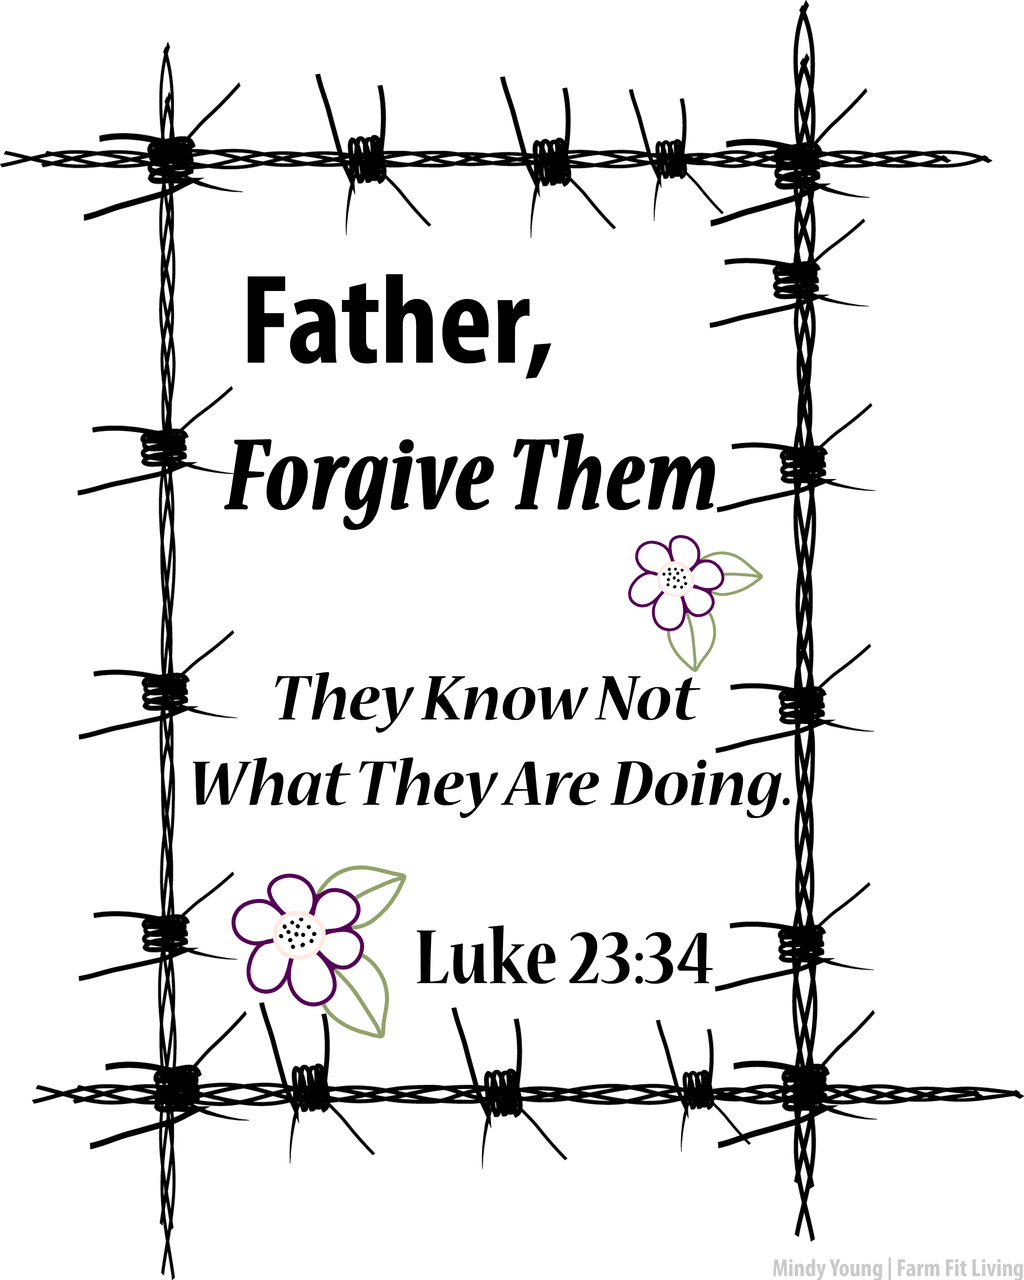 Luke 23:34 Forgive Them Wall Hanging